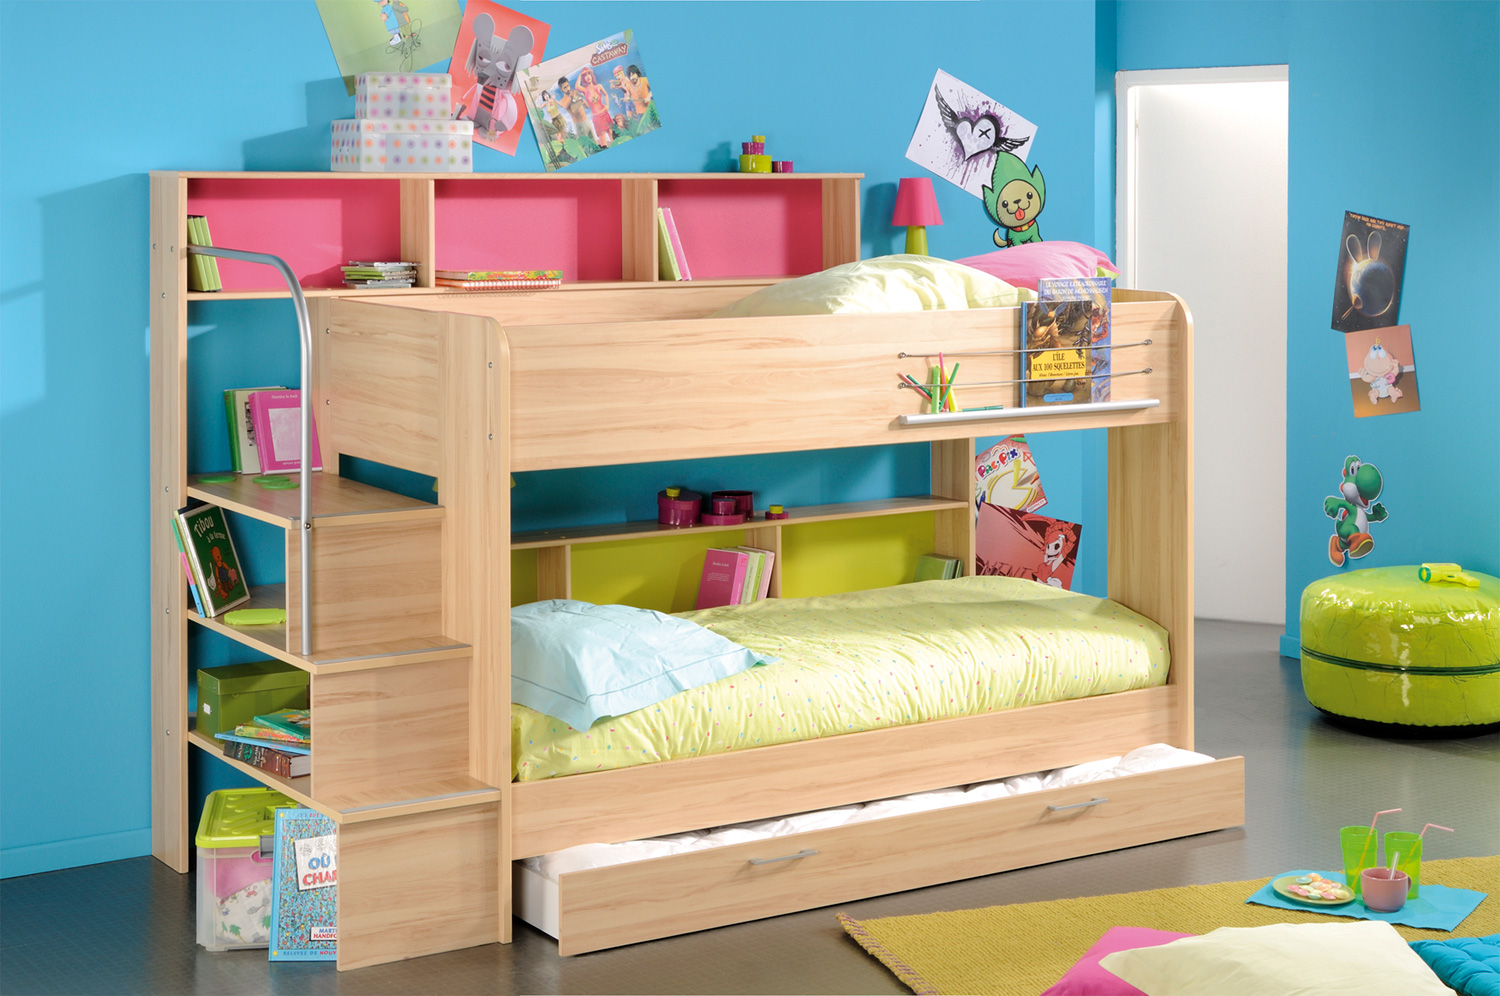 Space saving stylish bunk beds for your home for Stylish furniture for bedroom